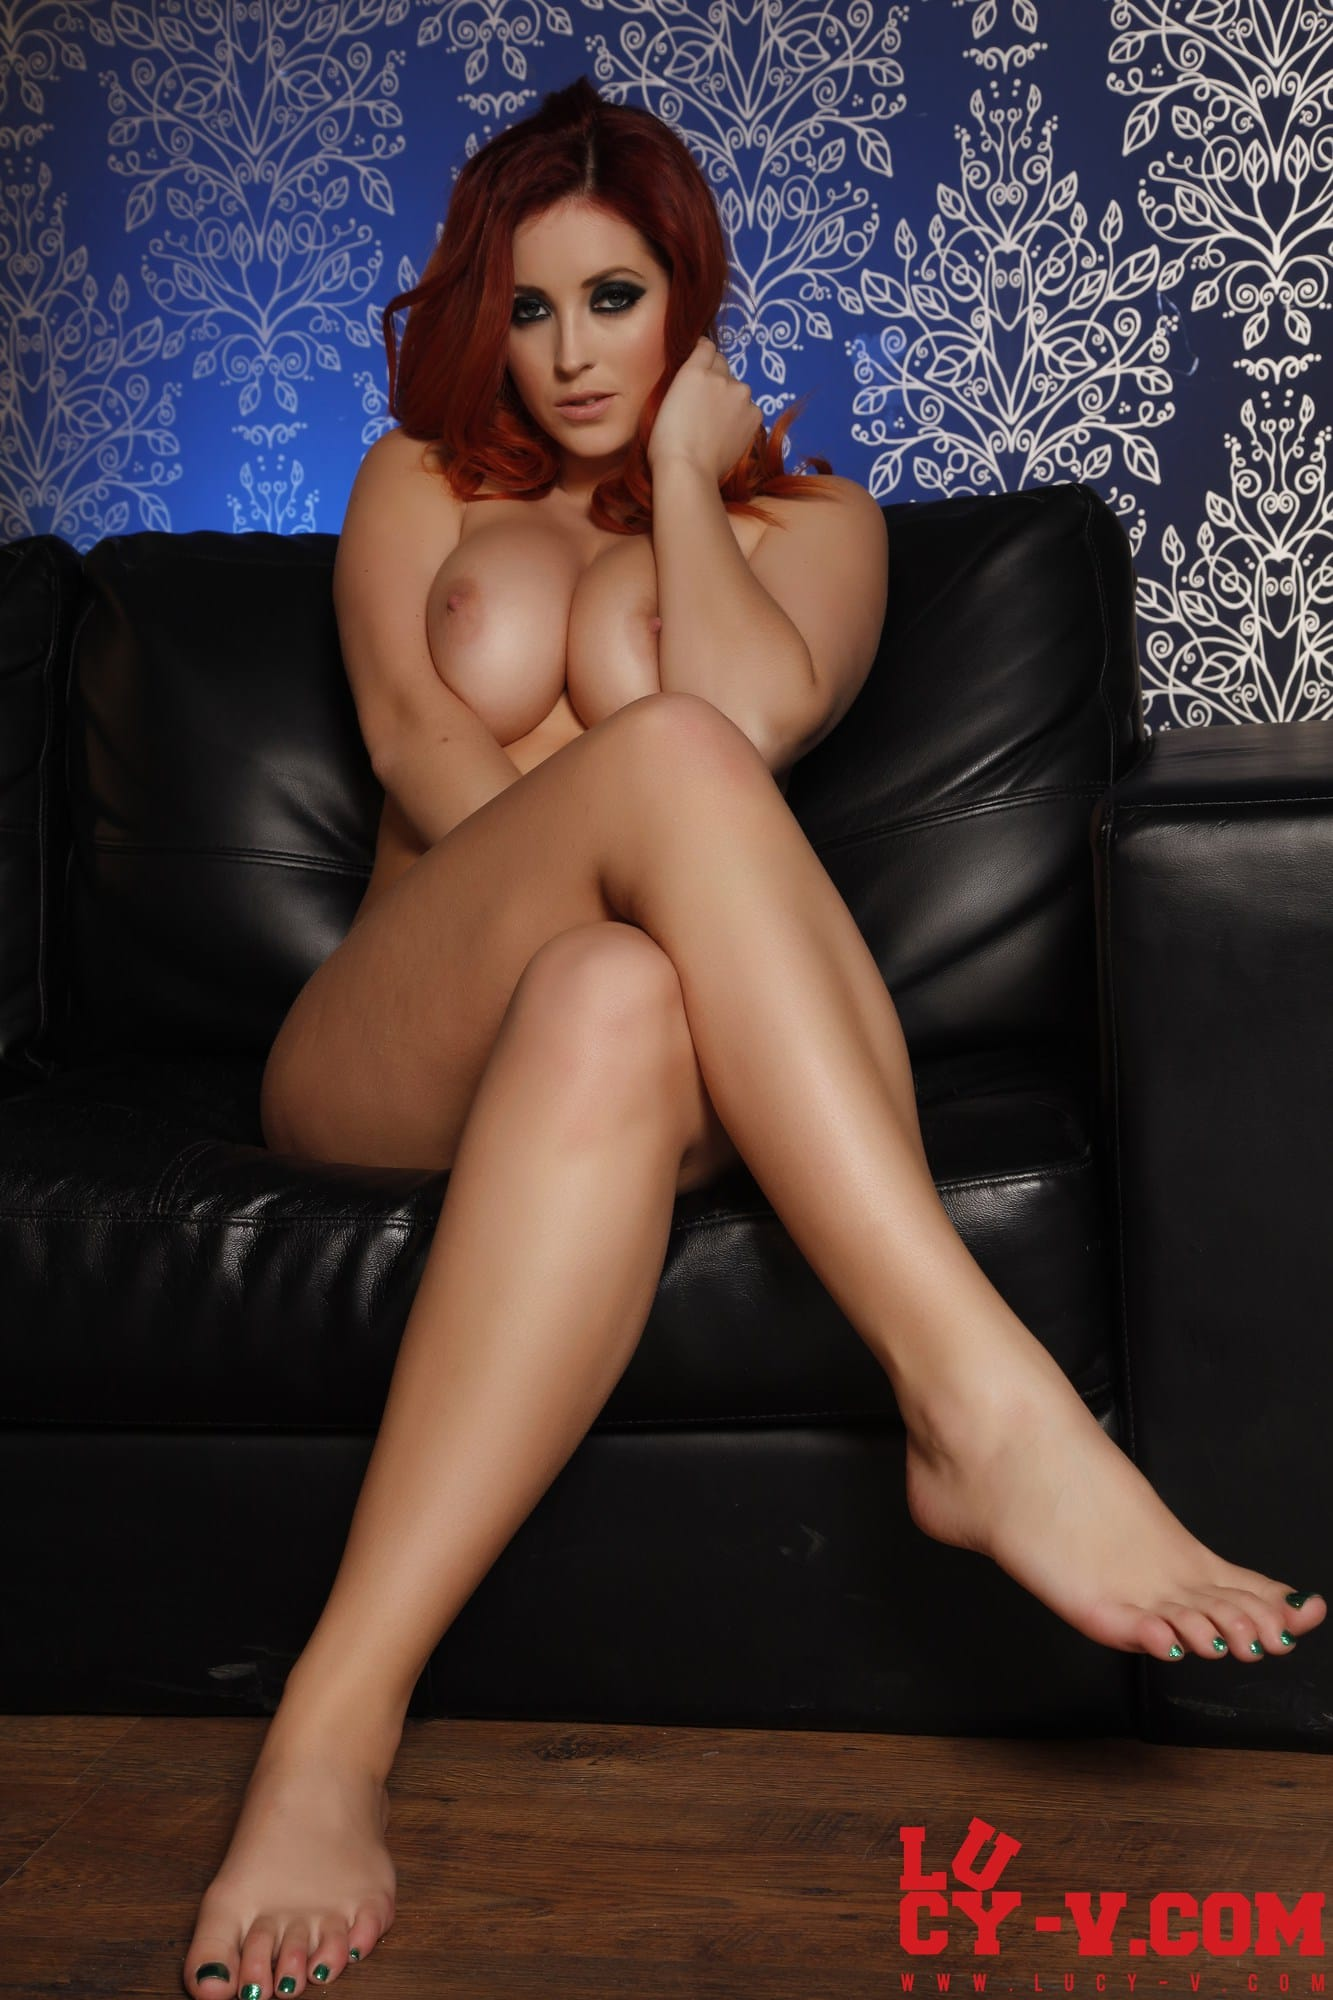 Lucy vixen pussy